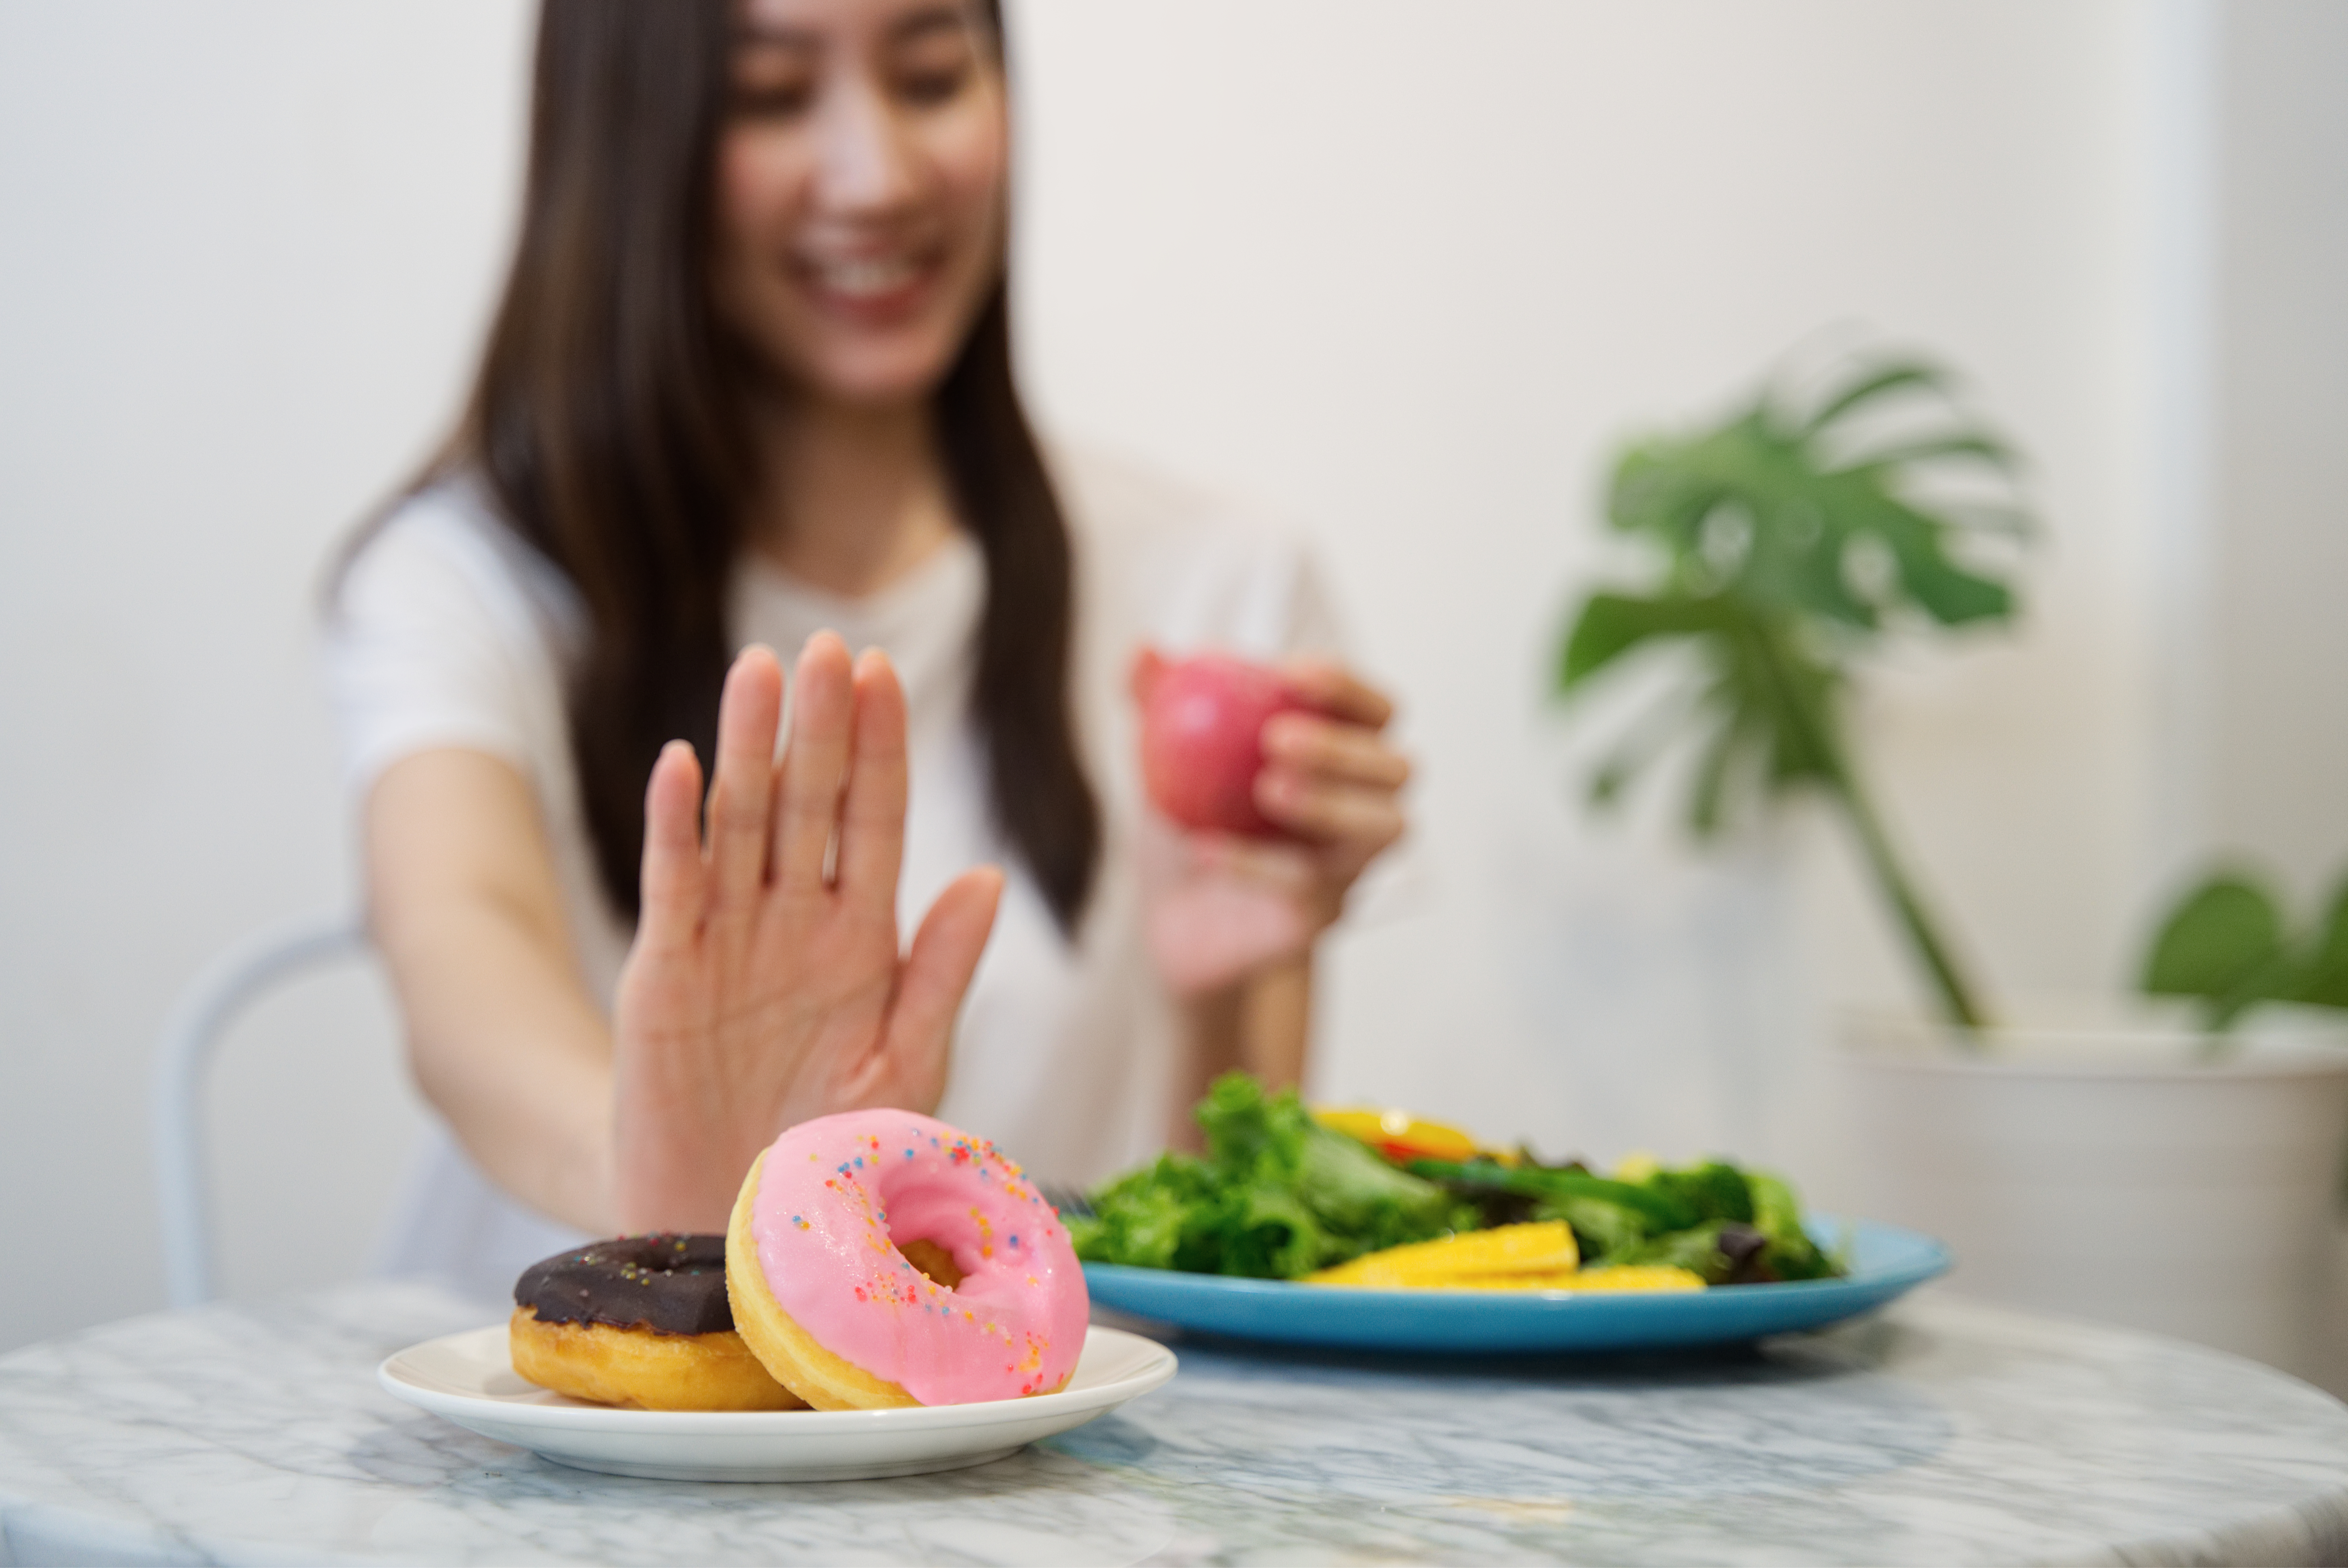 Young girl on dieting for good health concept. Close up female using hand reject junk food by pushing out her favorite donuts and choose red apple and salad for good health.